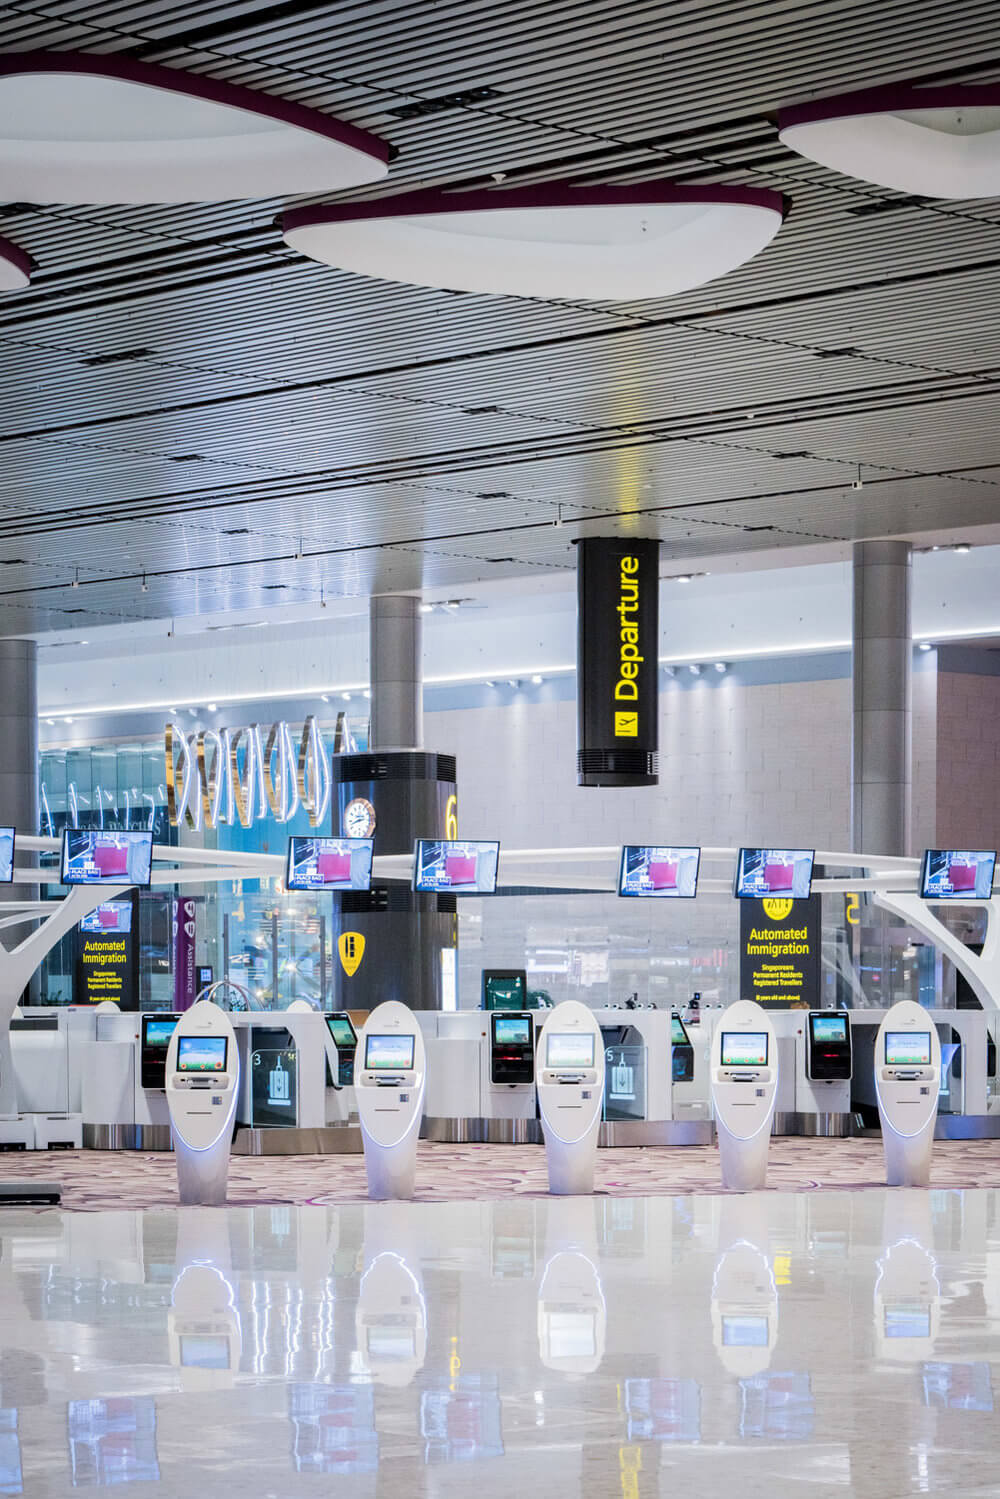 Idemia security products in airport